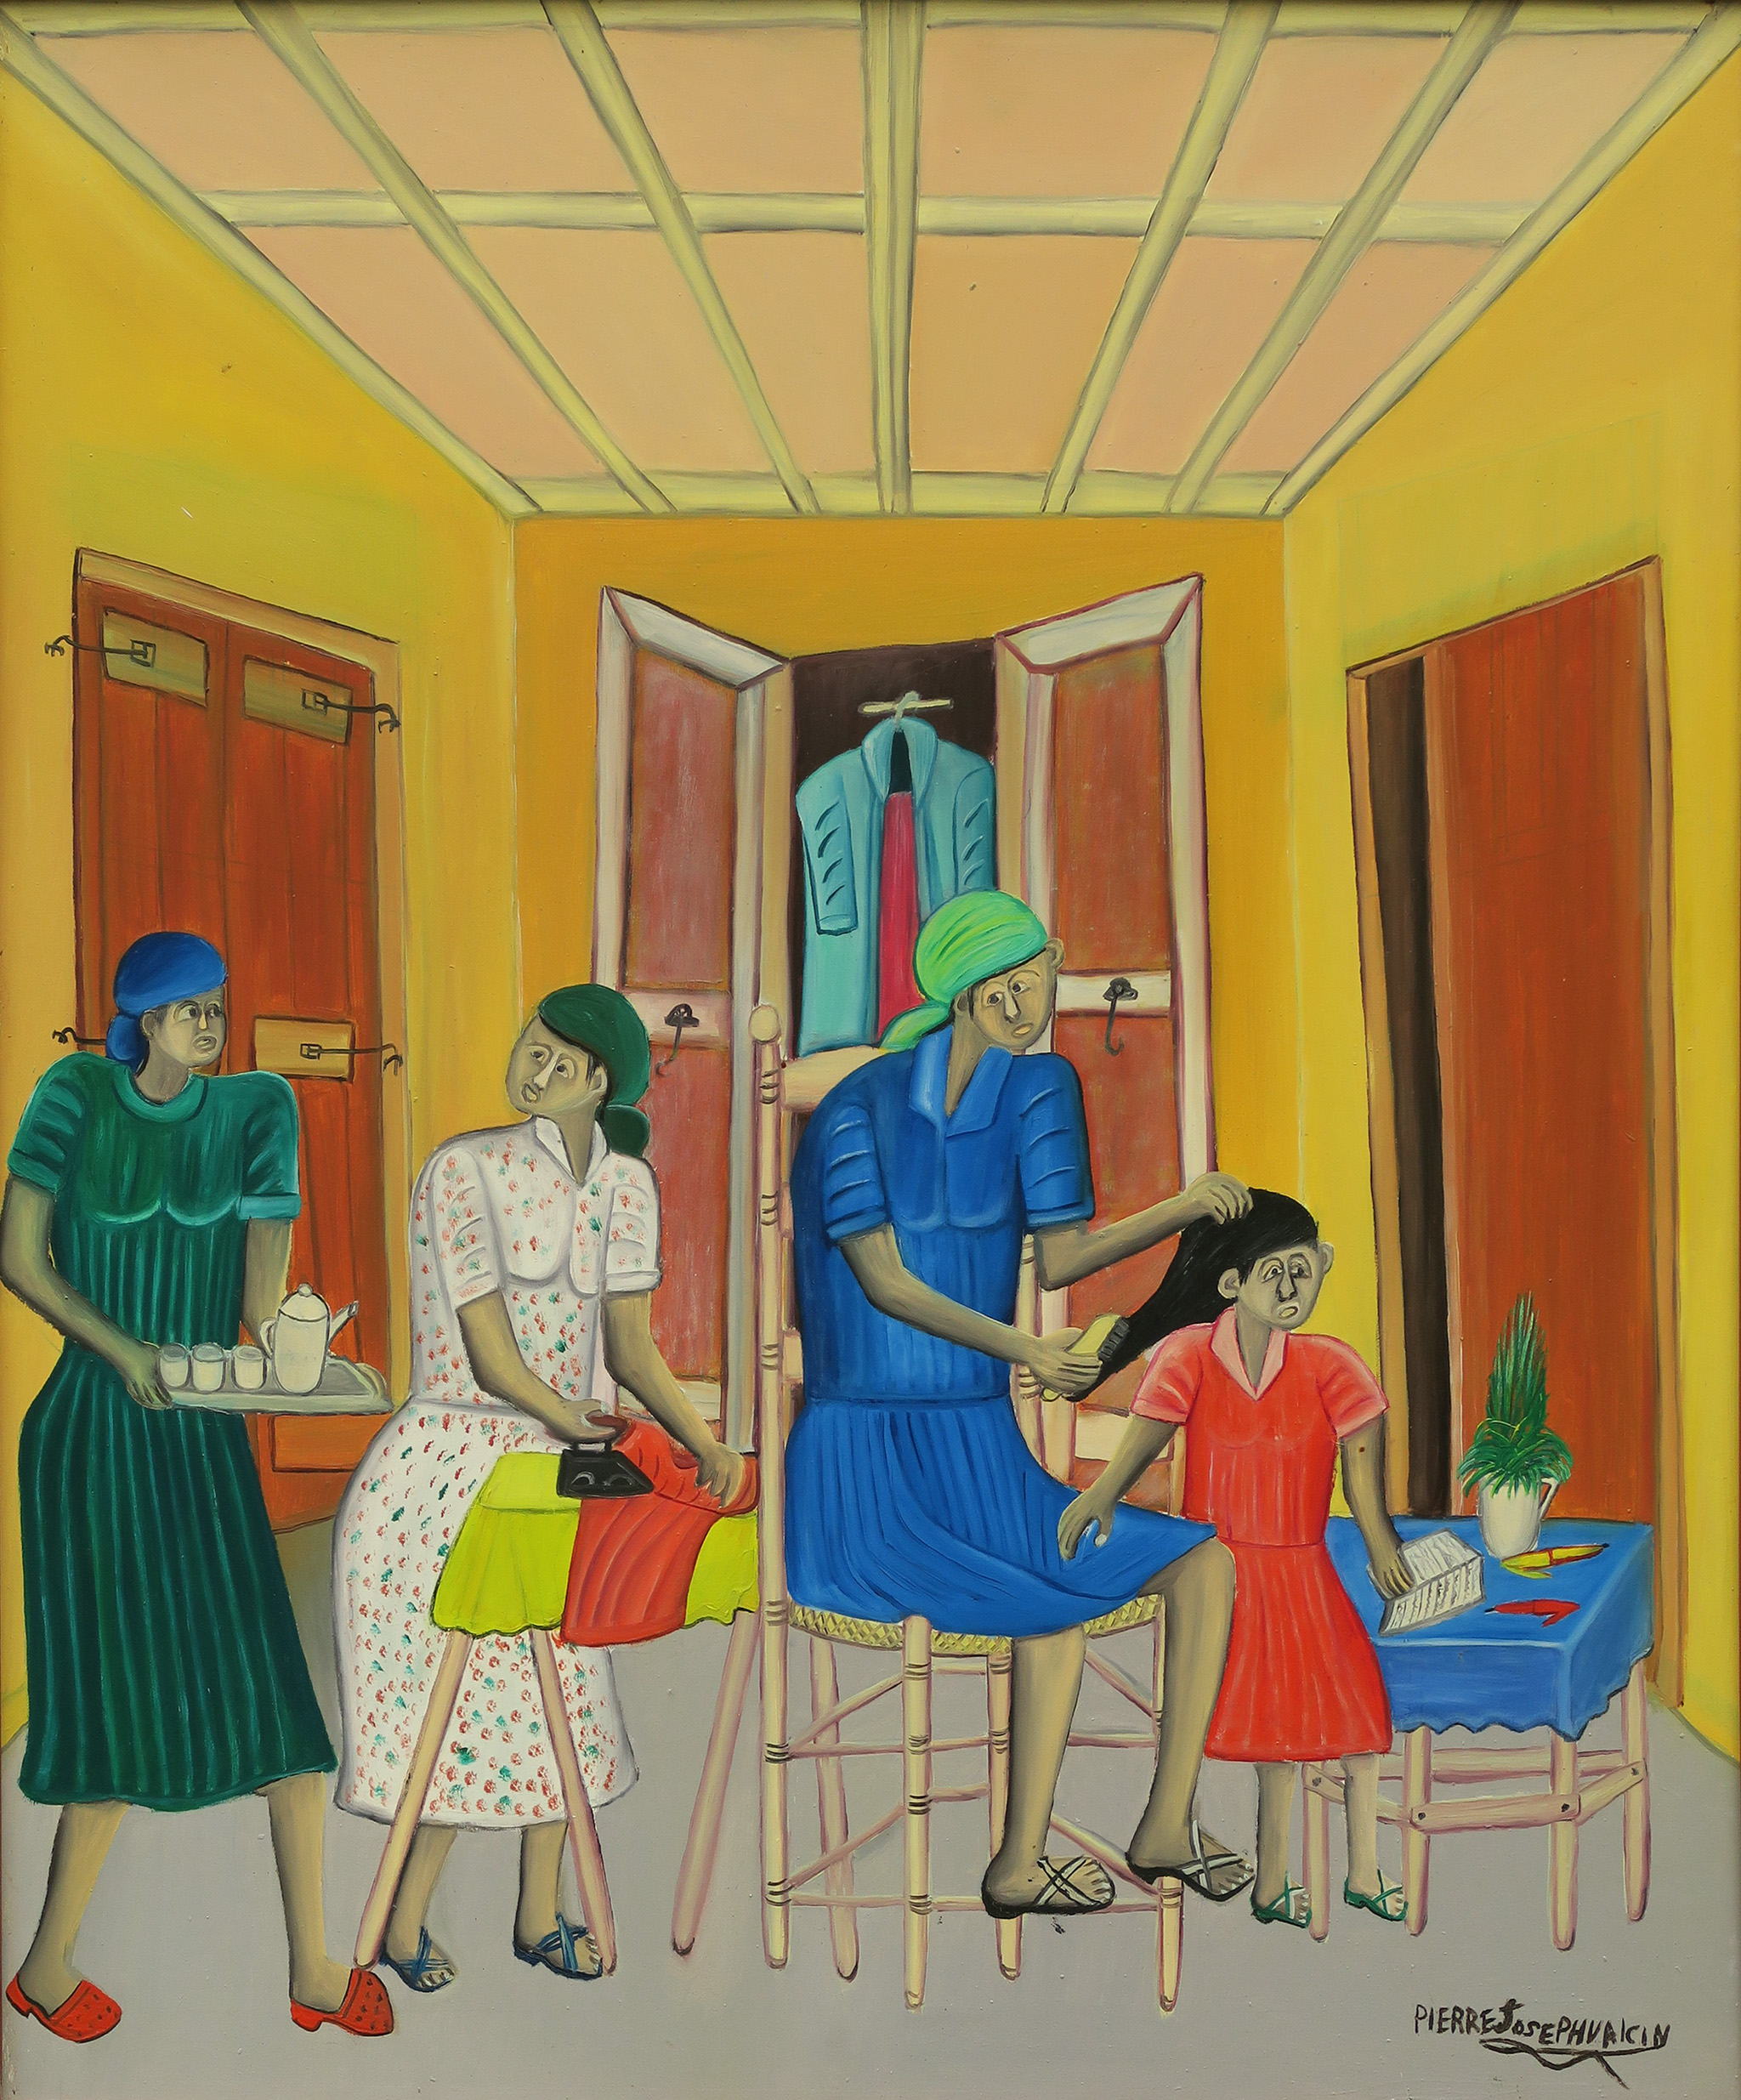 Untitled (Interior Domestic Scene), 1986